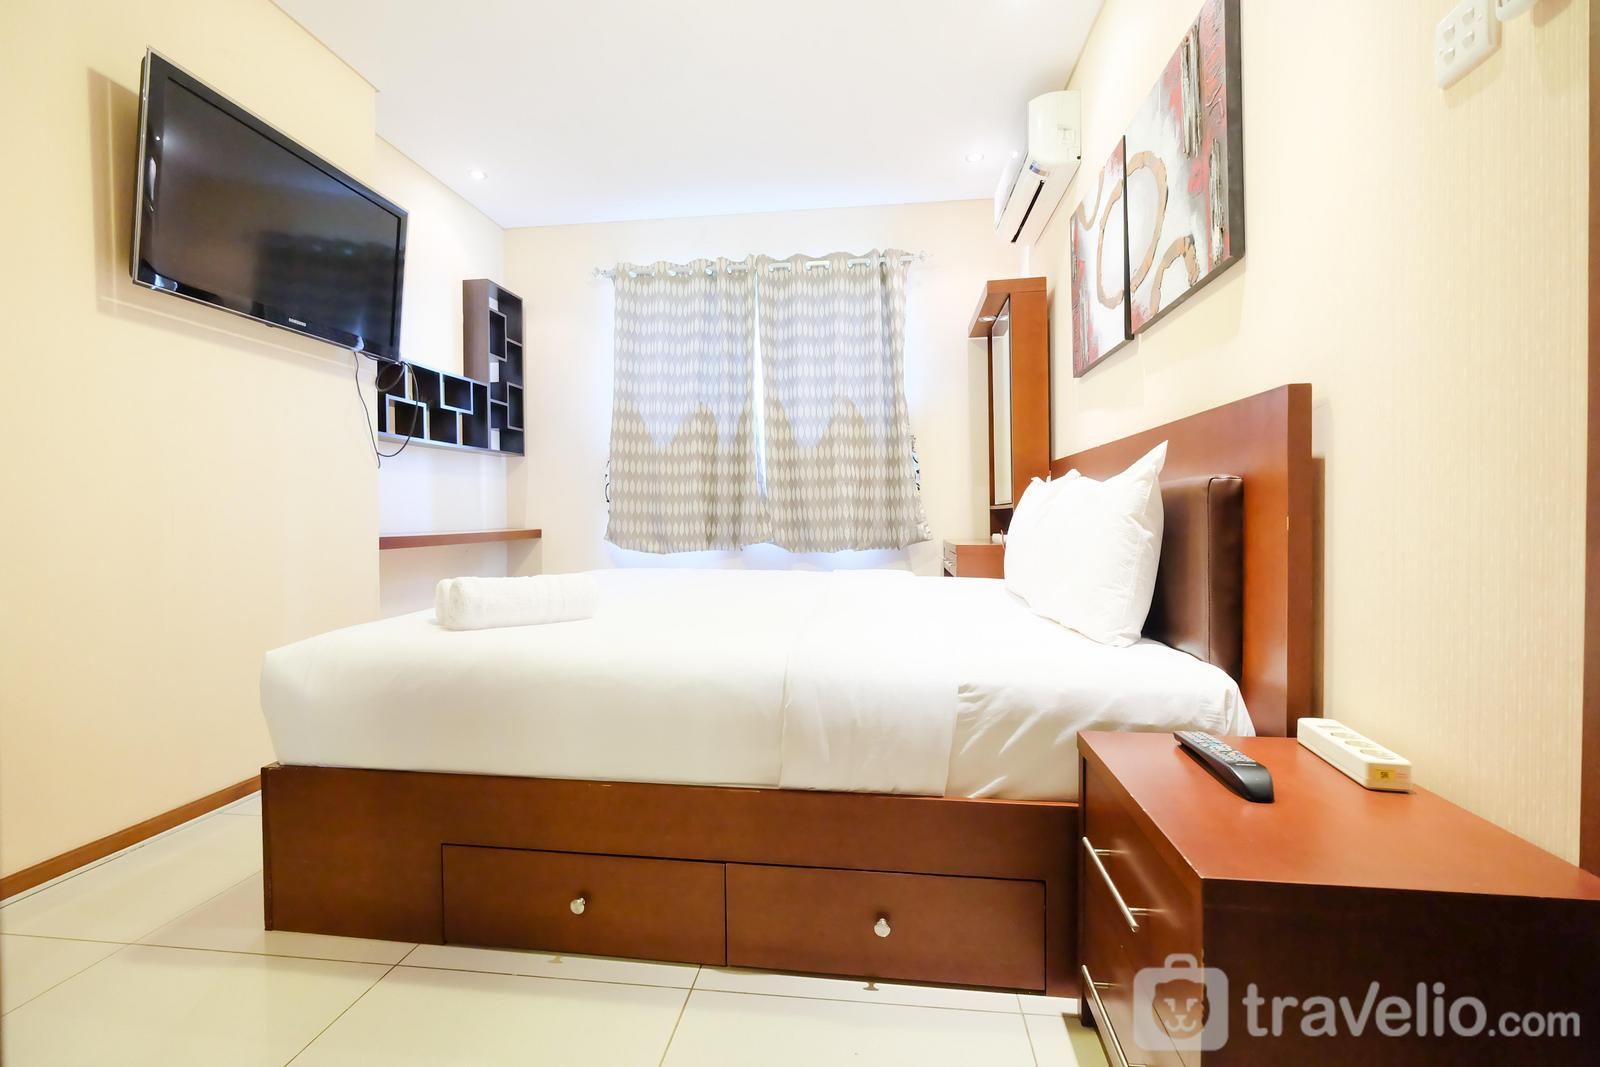 Thamrin Executive - 1BR Apartment @ Thamrin Executive Residence near Grand Indonesia By Travelio